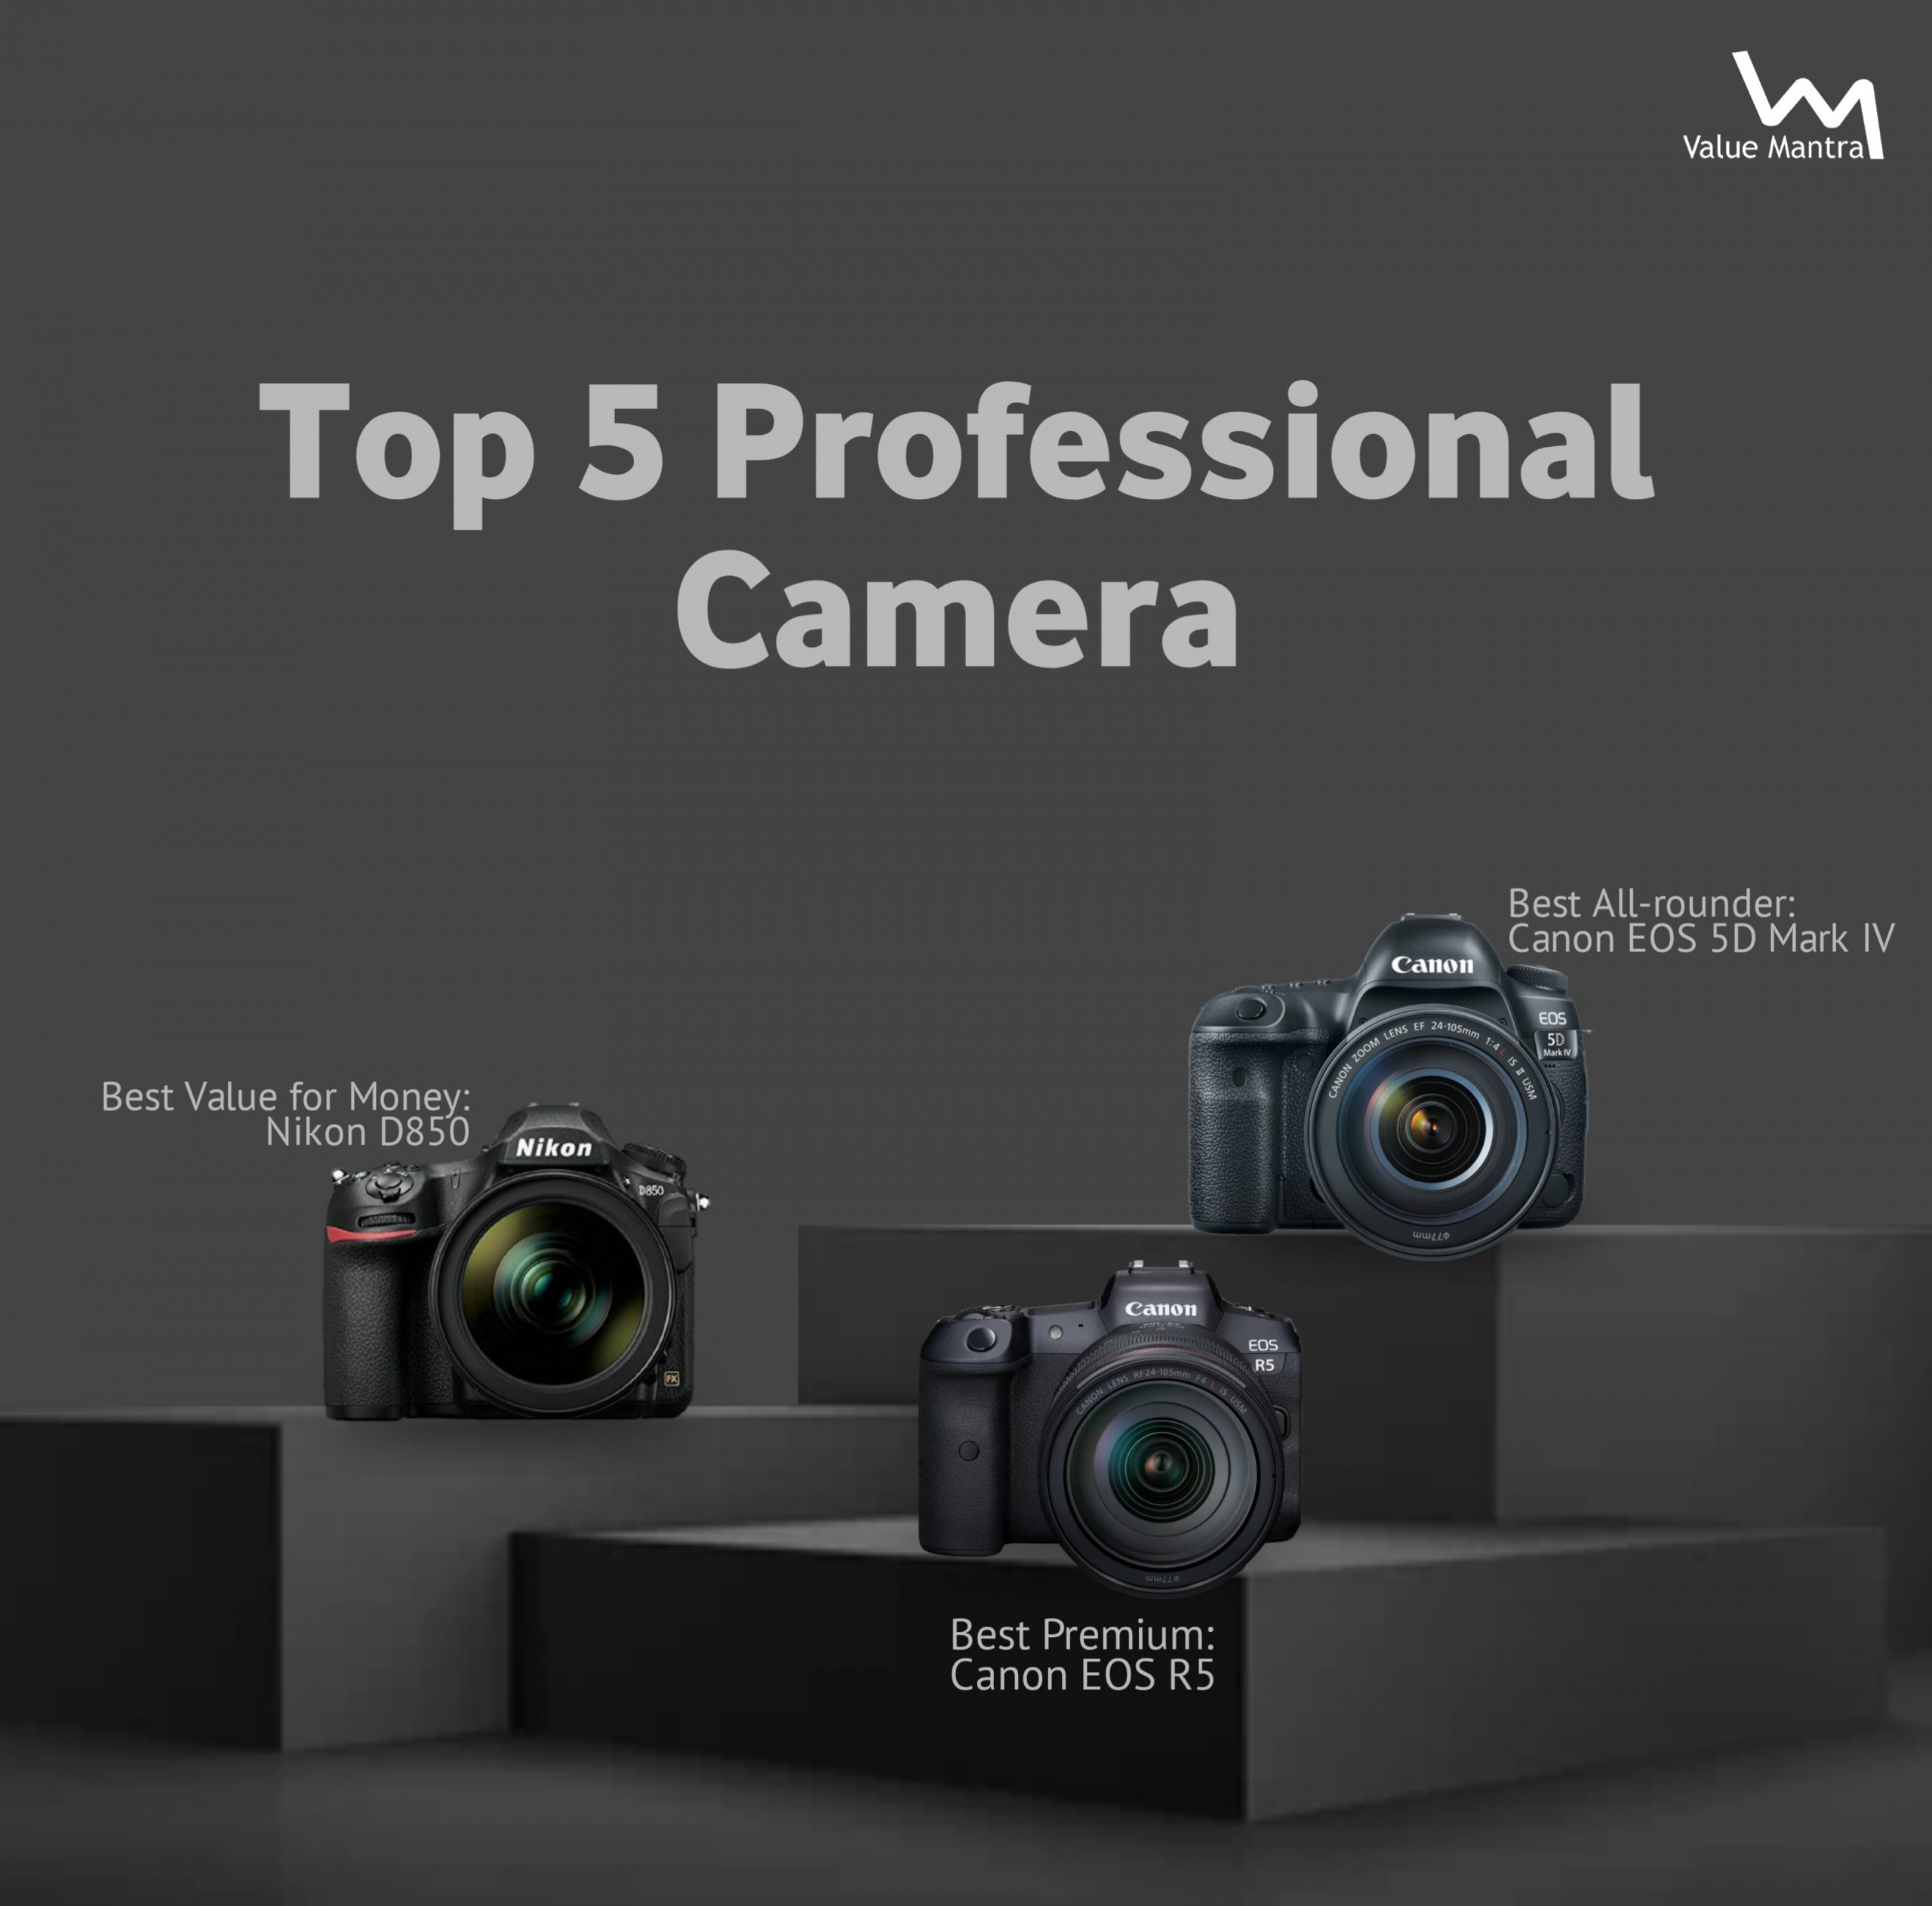 Best camera for professional photography